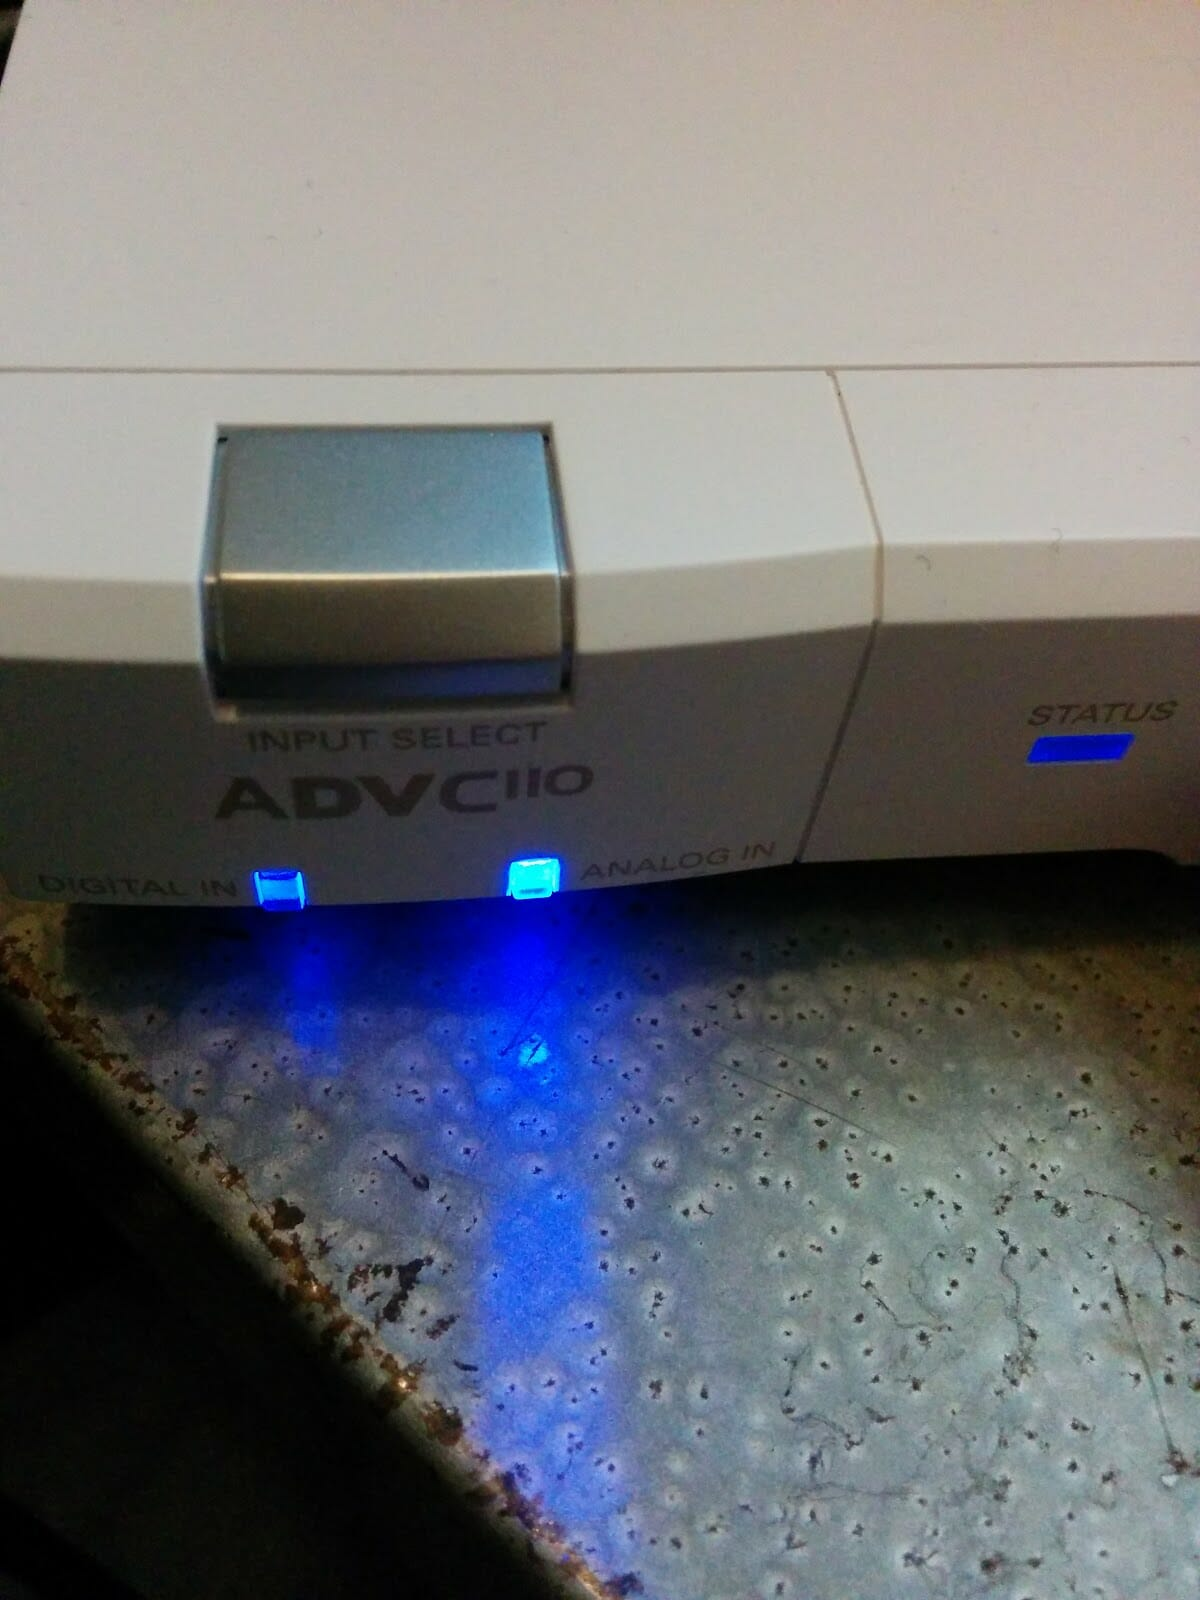 Canopus ADVC110 analog in